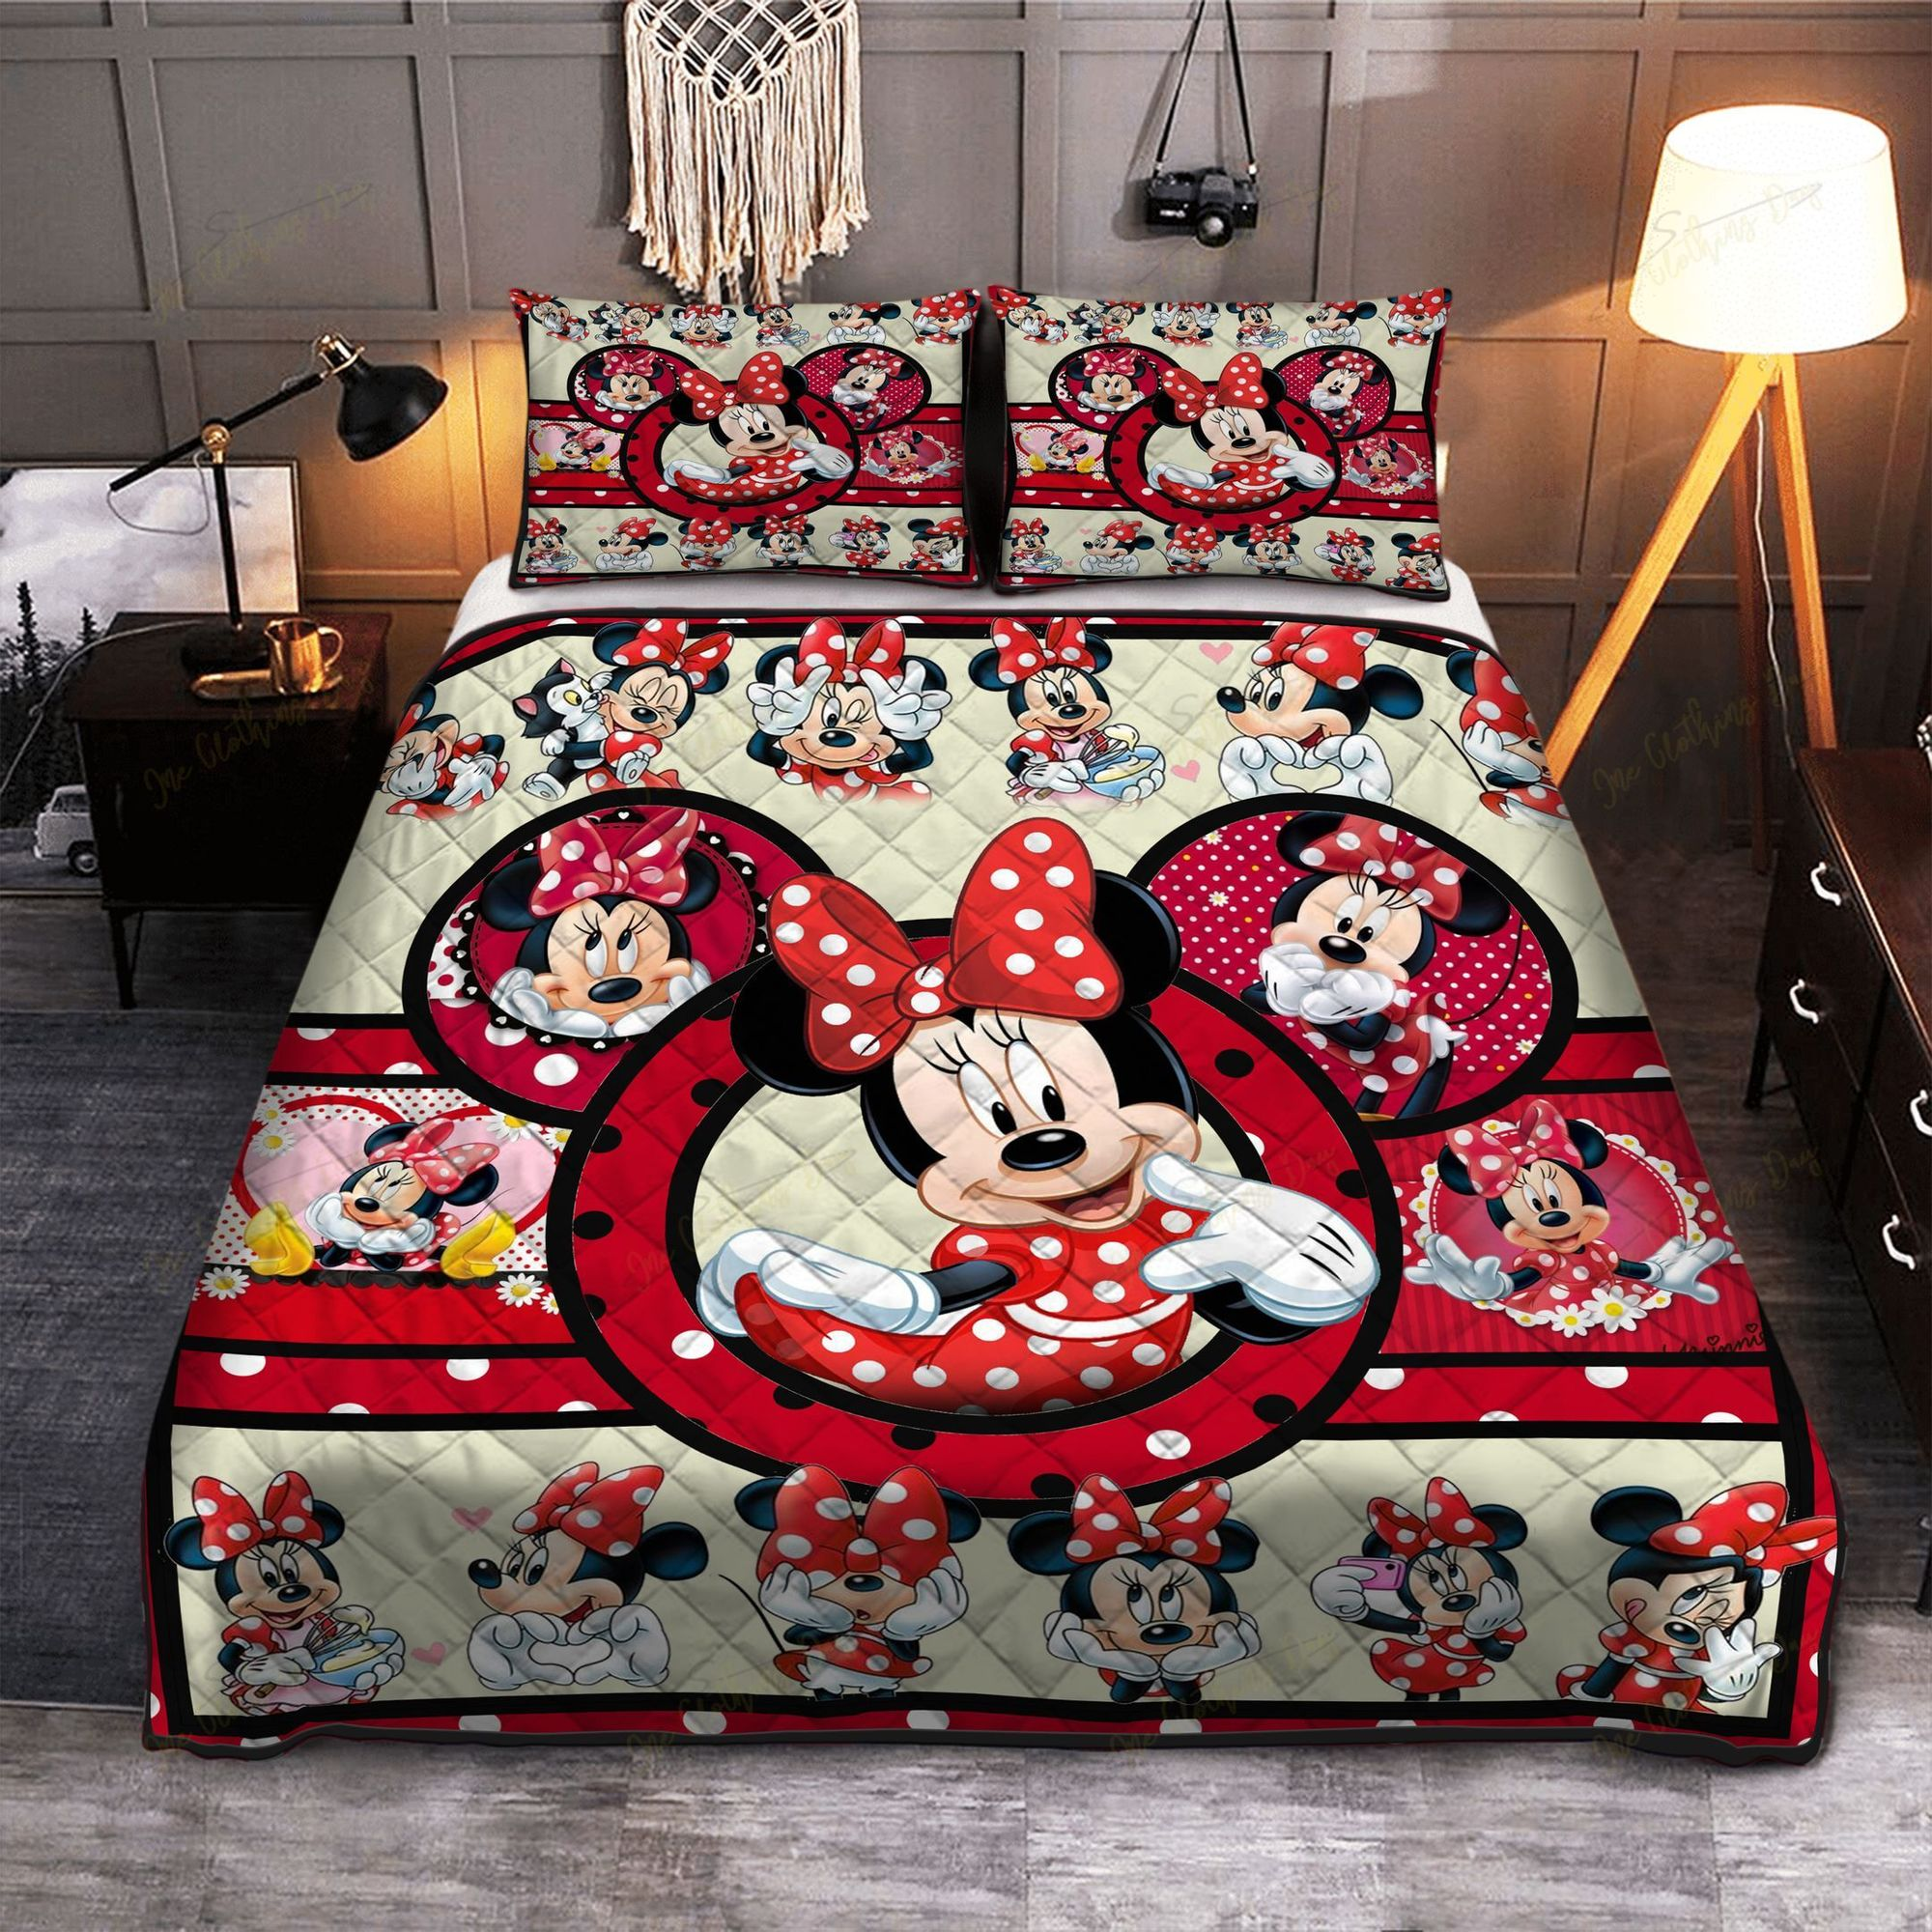 Cute Minnie Mouse Bedding set